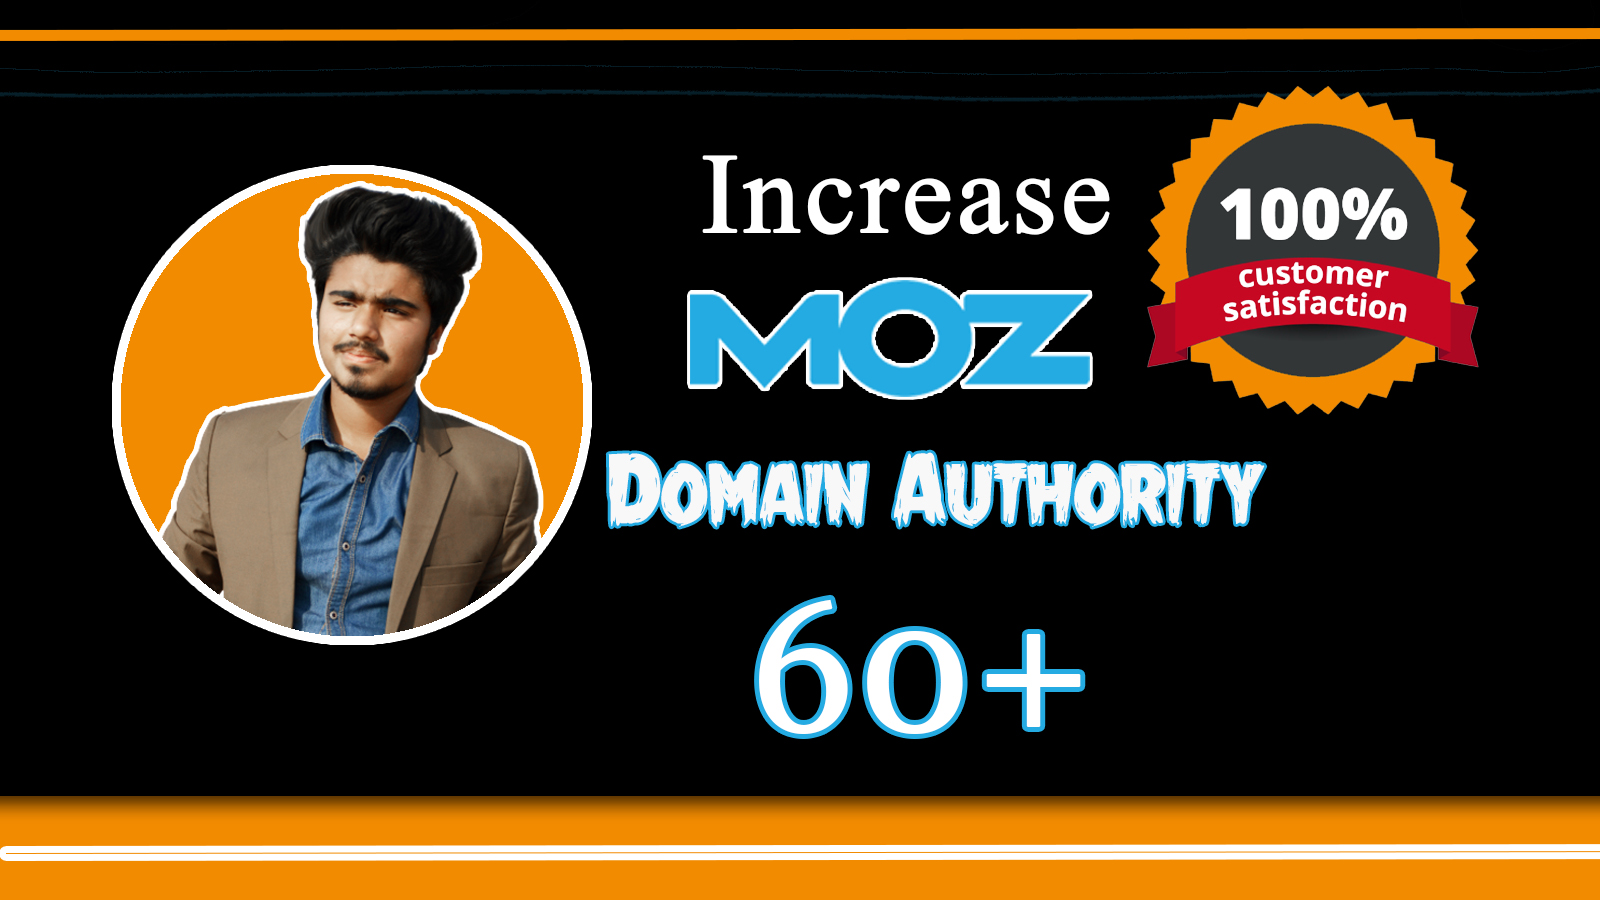 increase moz domain authority da 60 plus with best strategy